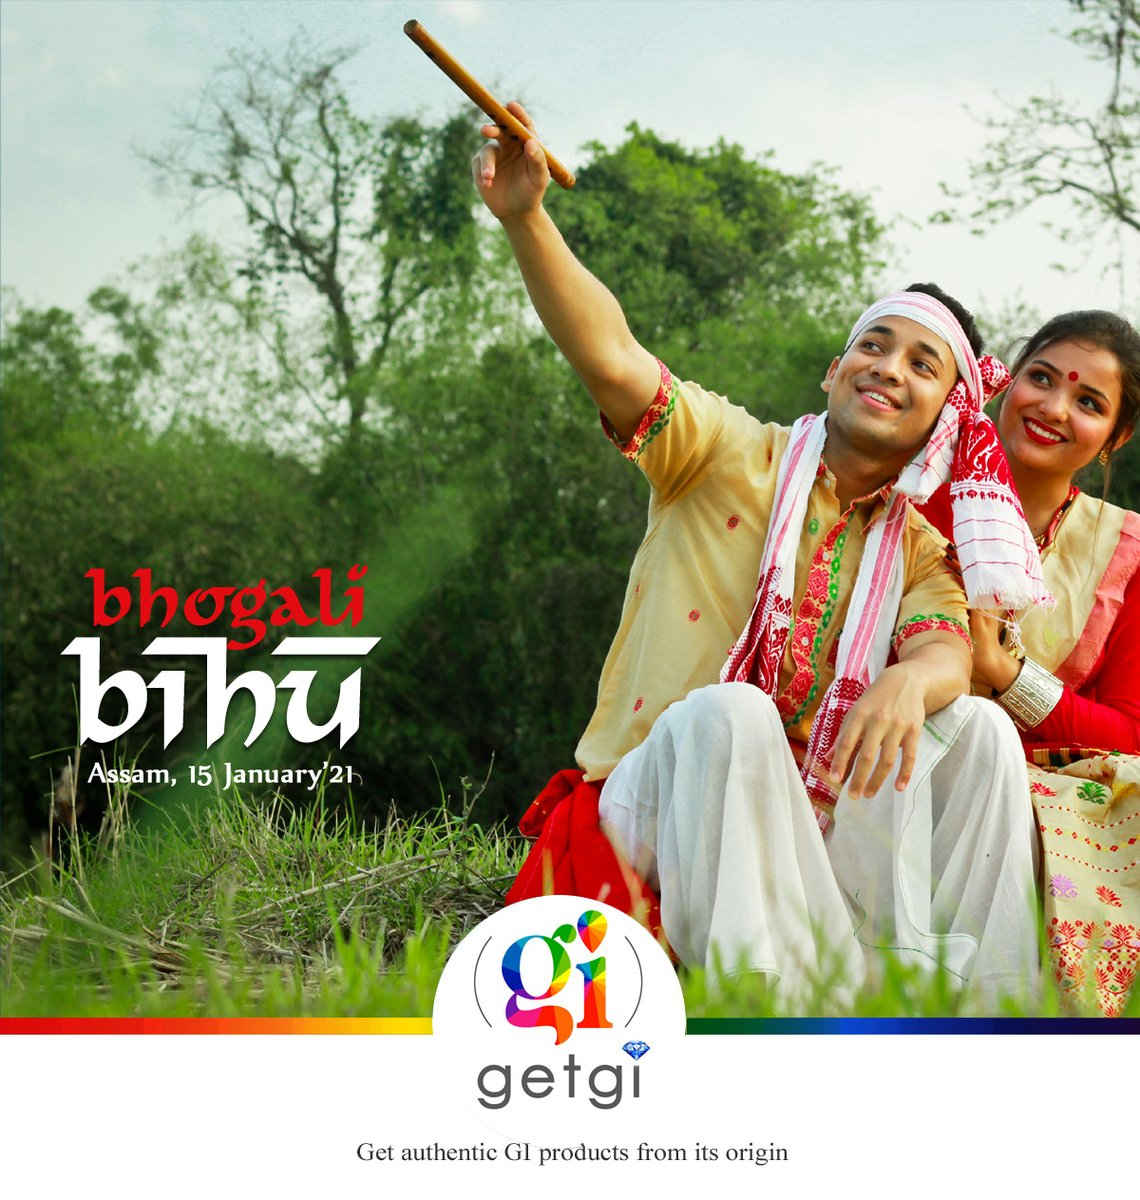 #BhogaliBihu #Assam has three festivals connected to the paddy crop. Magh Bihu or Bhogali Bihu is the most important festival in Assam when people celebrate the paddy harvest with music, dances, and feasting.  #getgionline #getgi_online  #getgi #festivalseason #Bihu #bihu2021